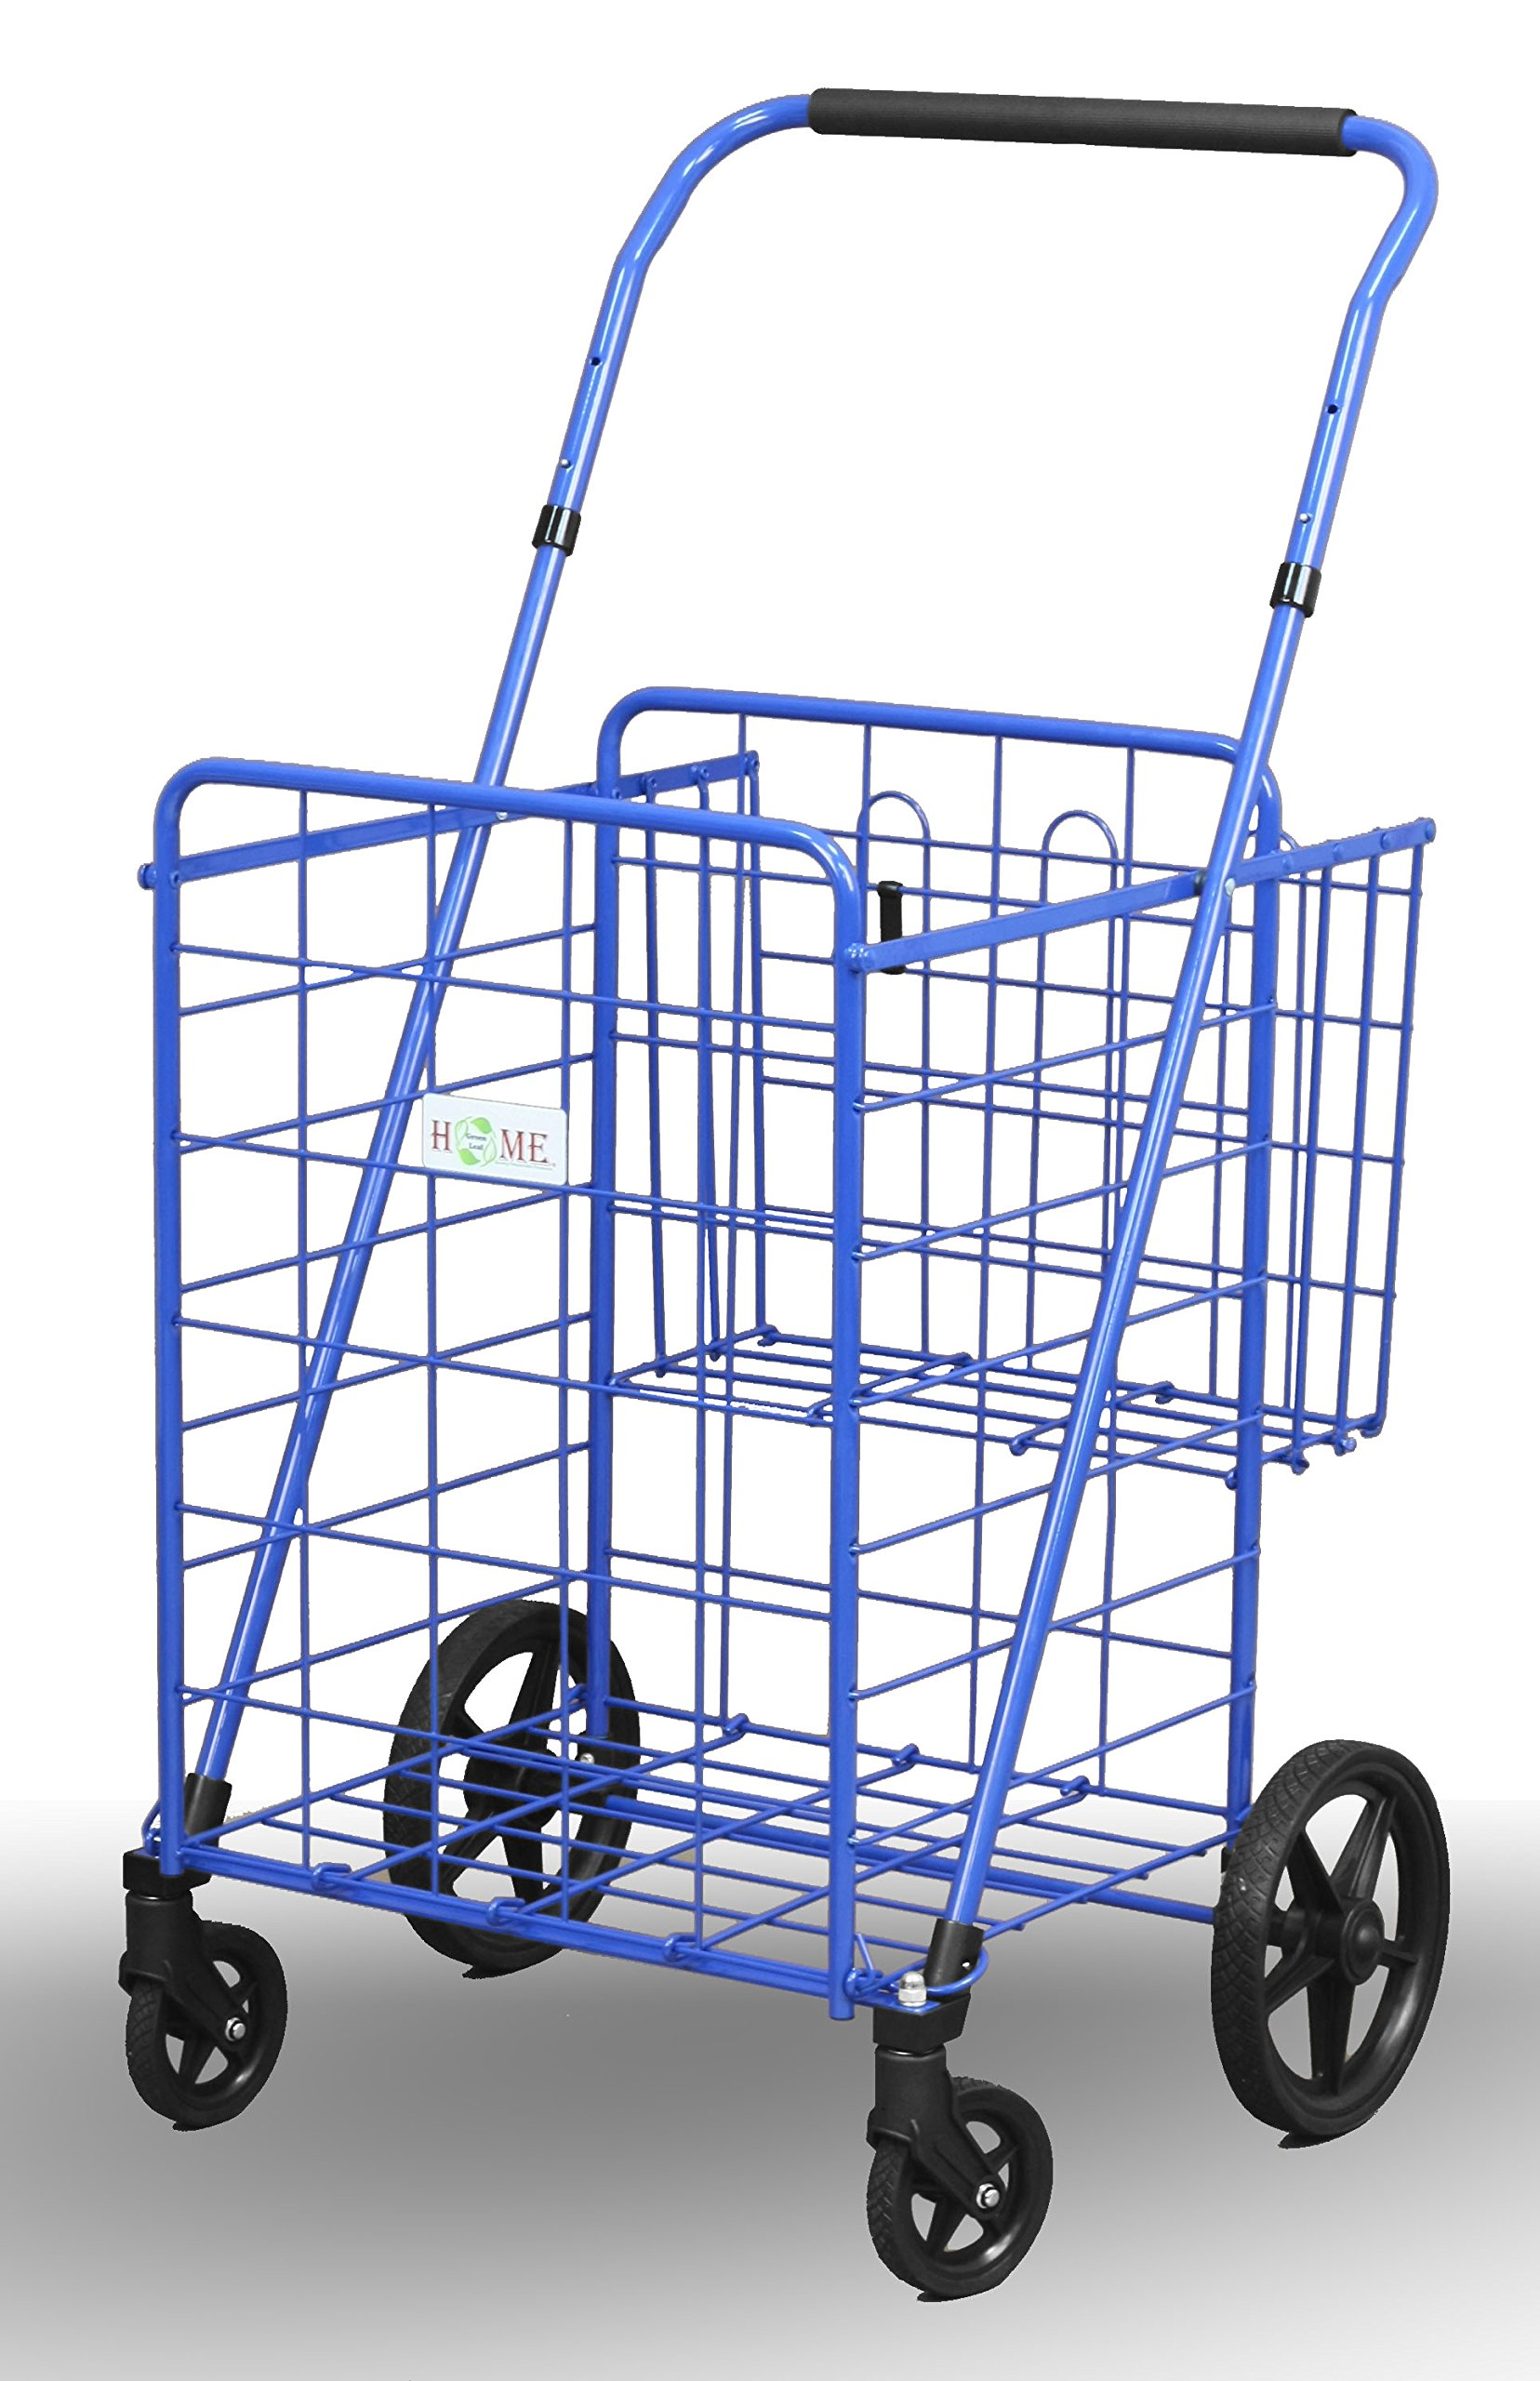 Uniware 1210-BL Shopping Cart with Back Basket, 23.5'' x 25.5'' x 42'', Large, Blue by Uniware